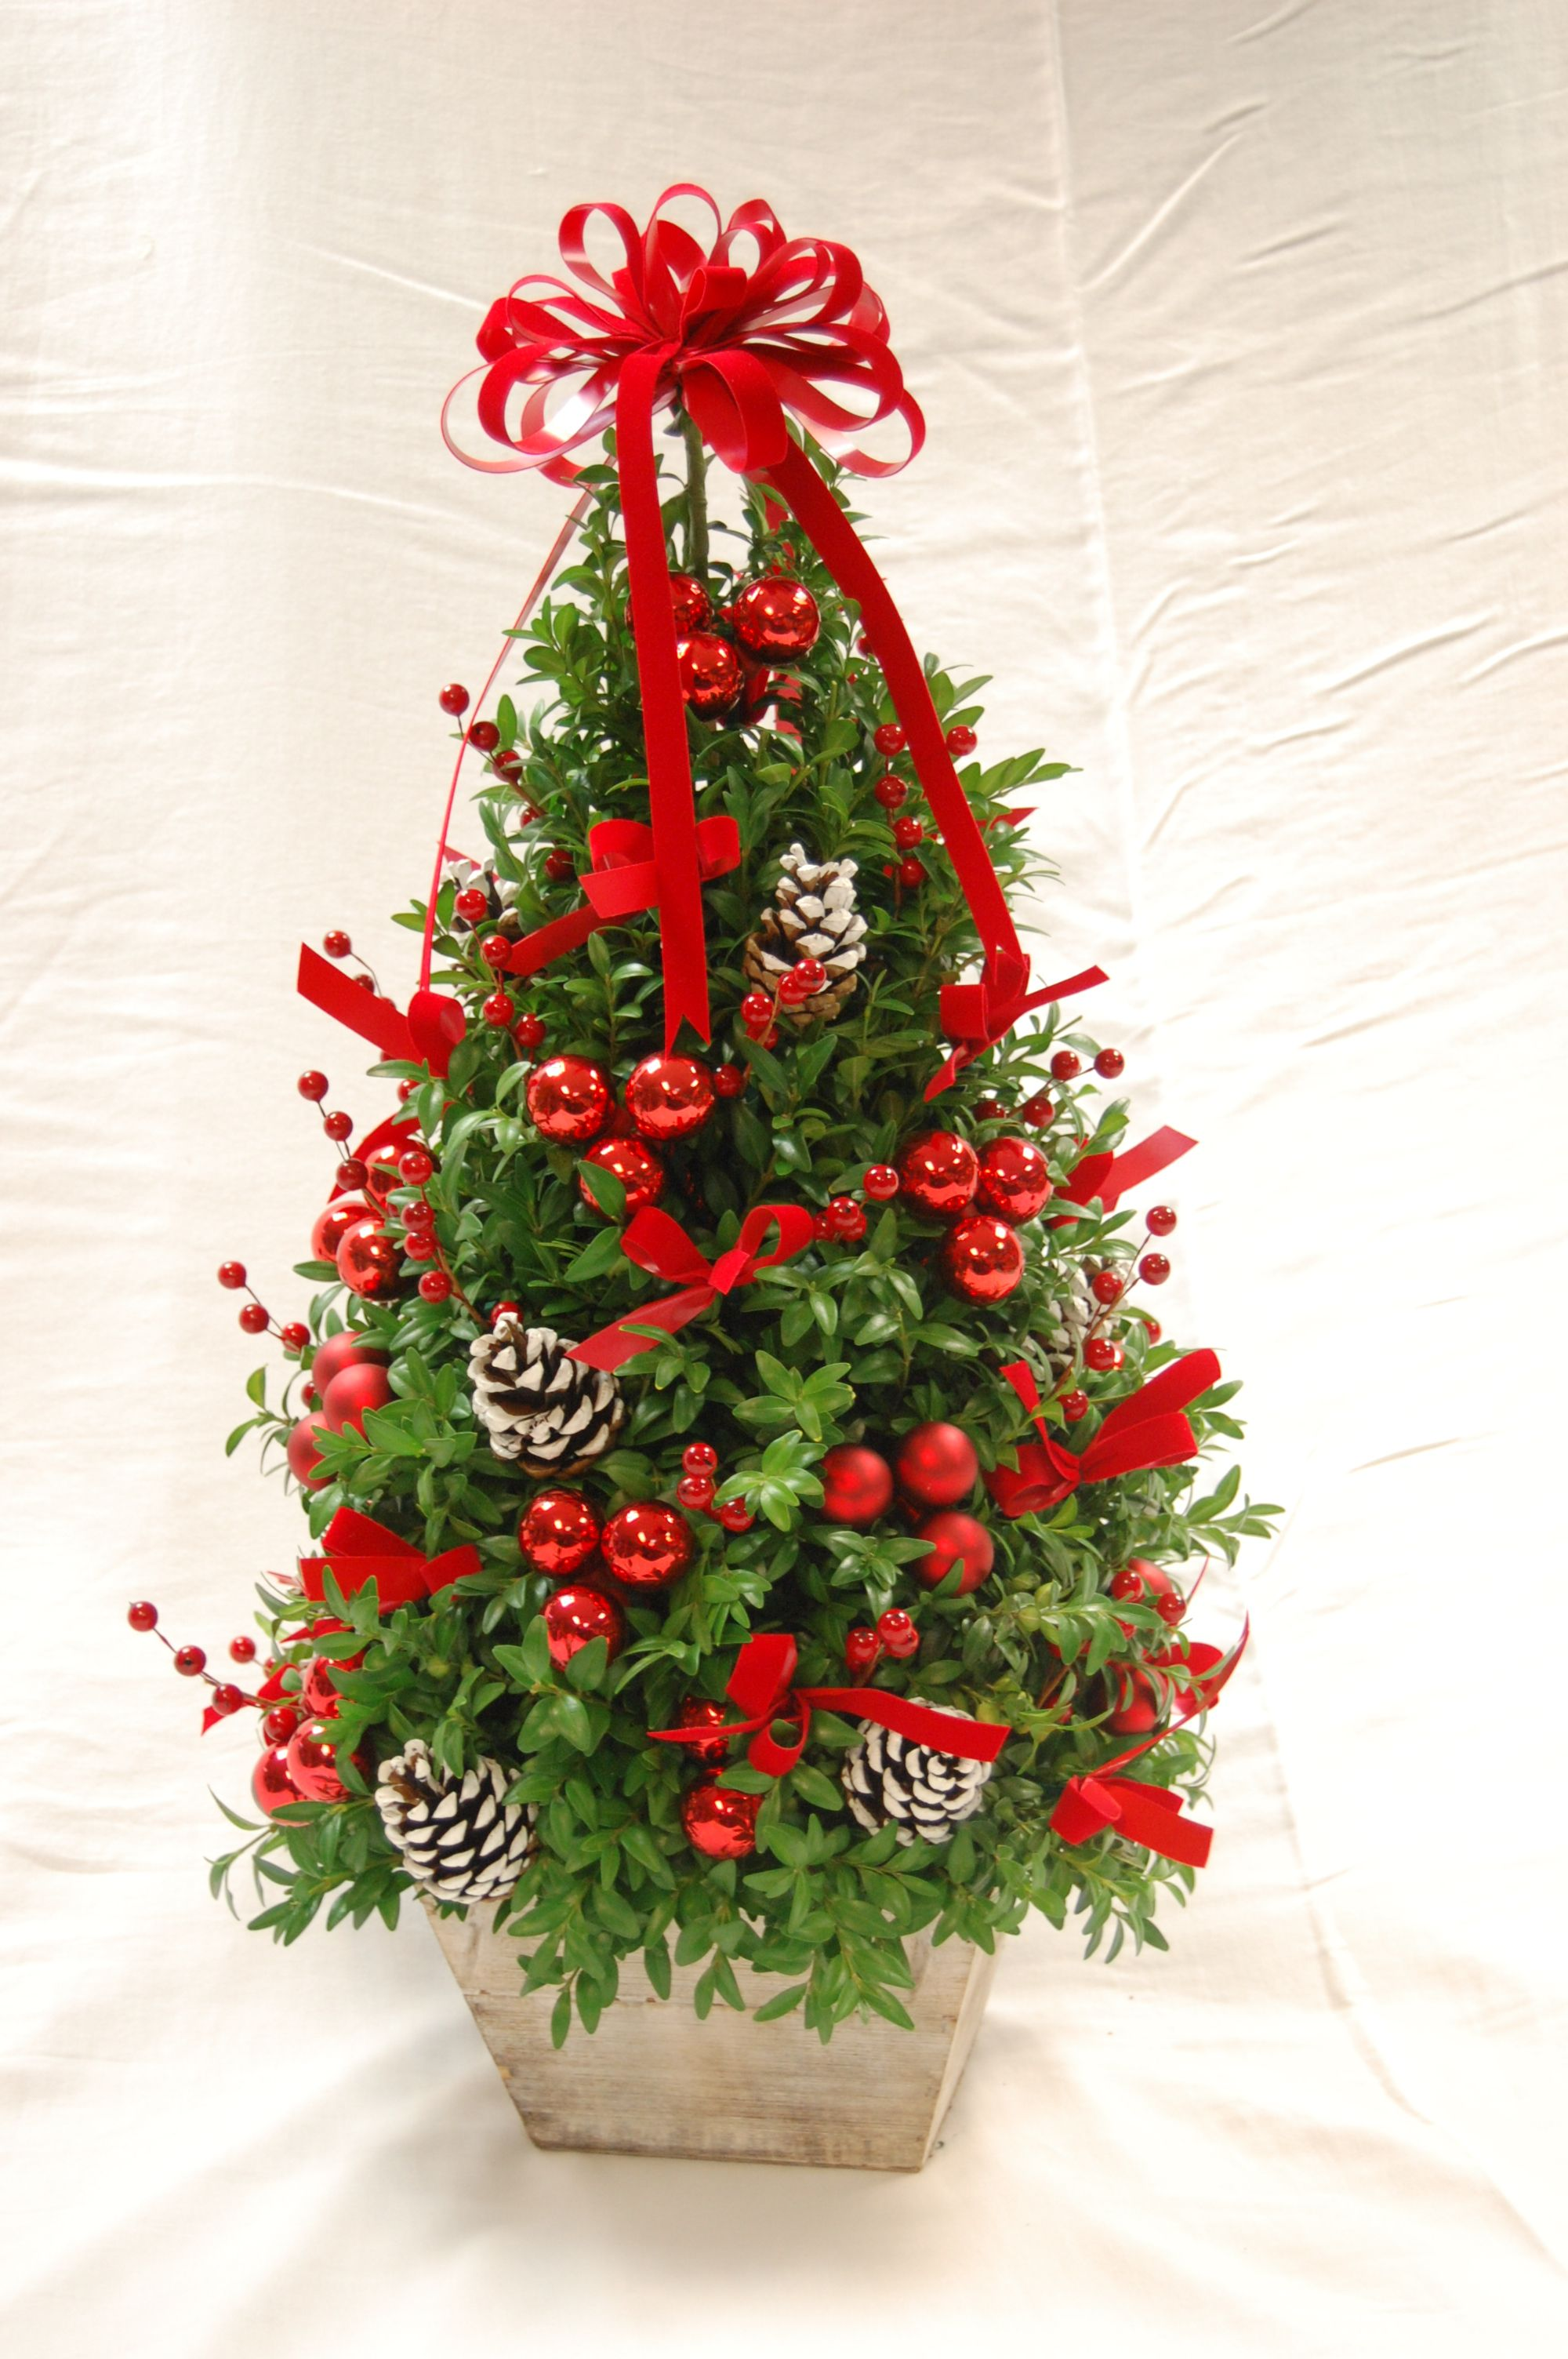 A Boxwood Christmas Tree